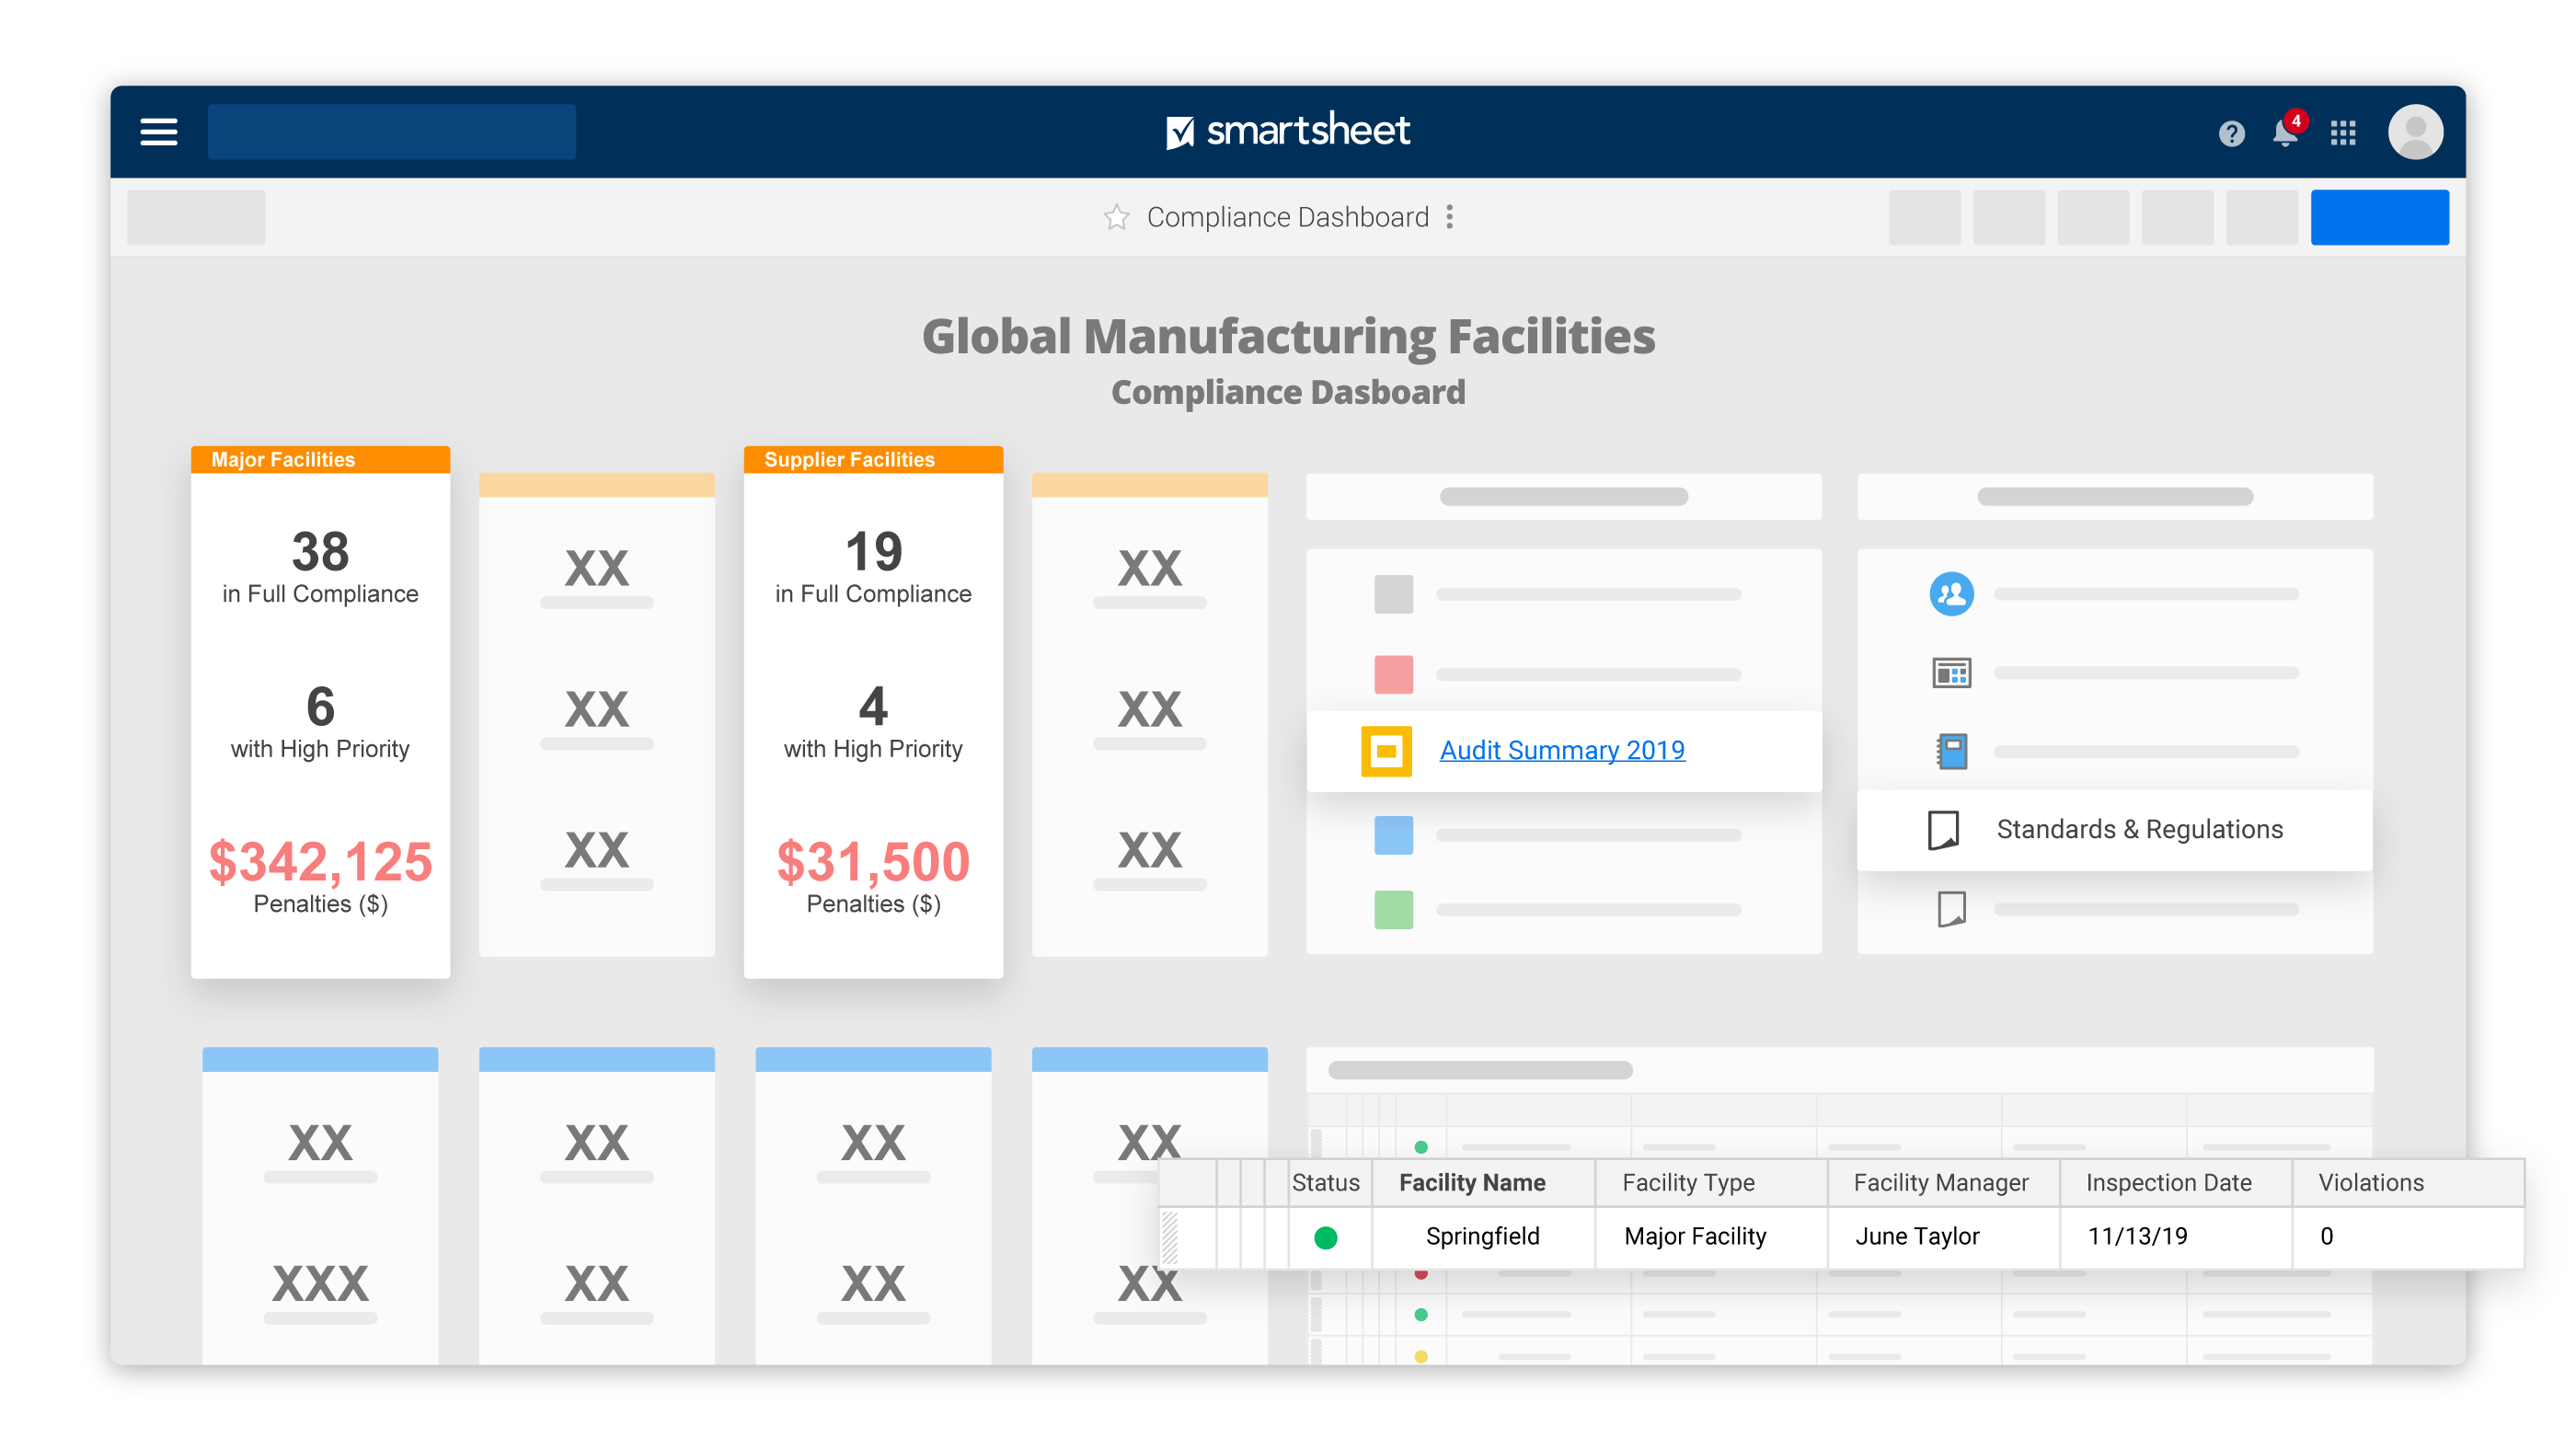 Improve Uptime and Accelerate Production | Smartsheet